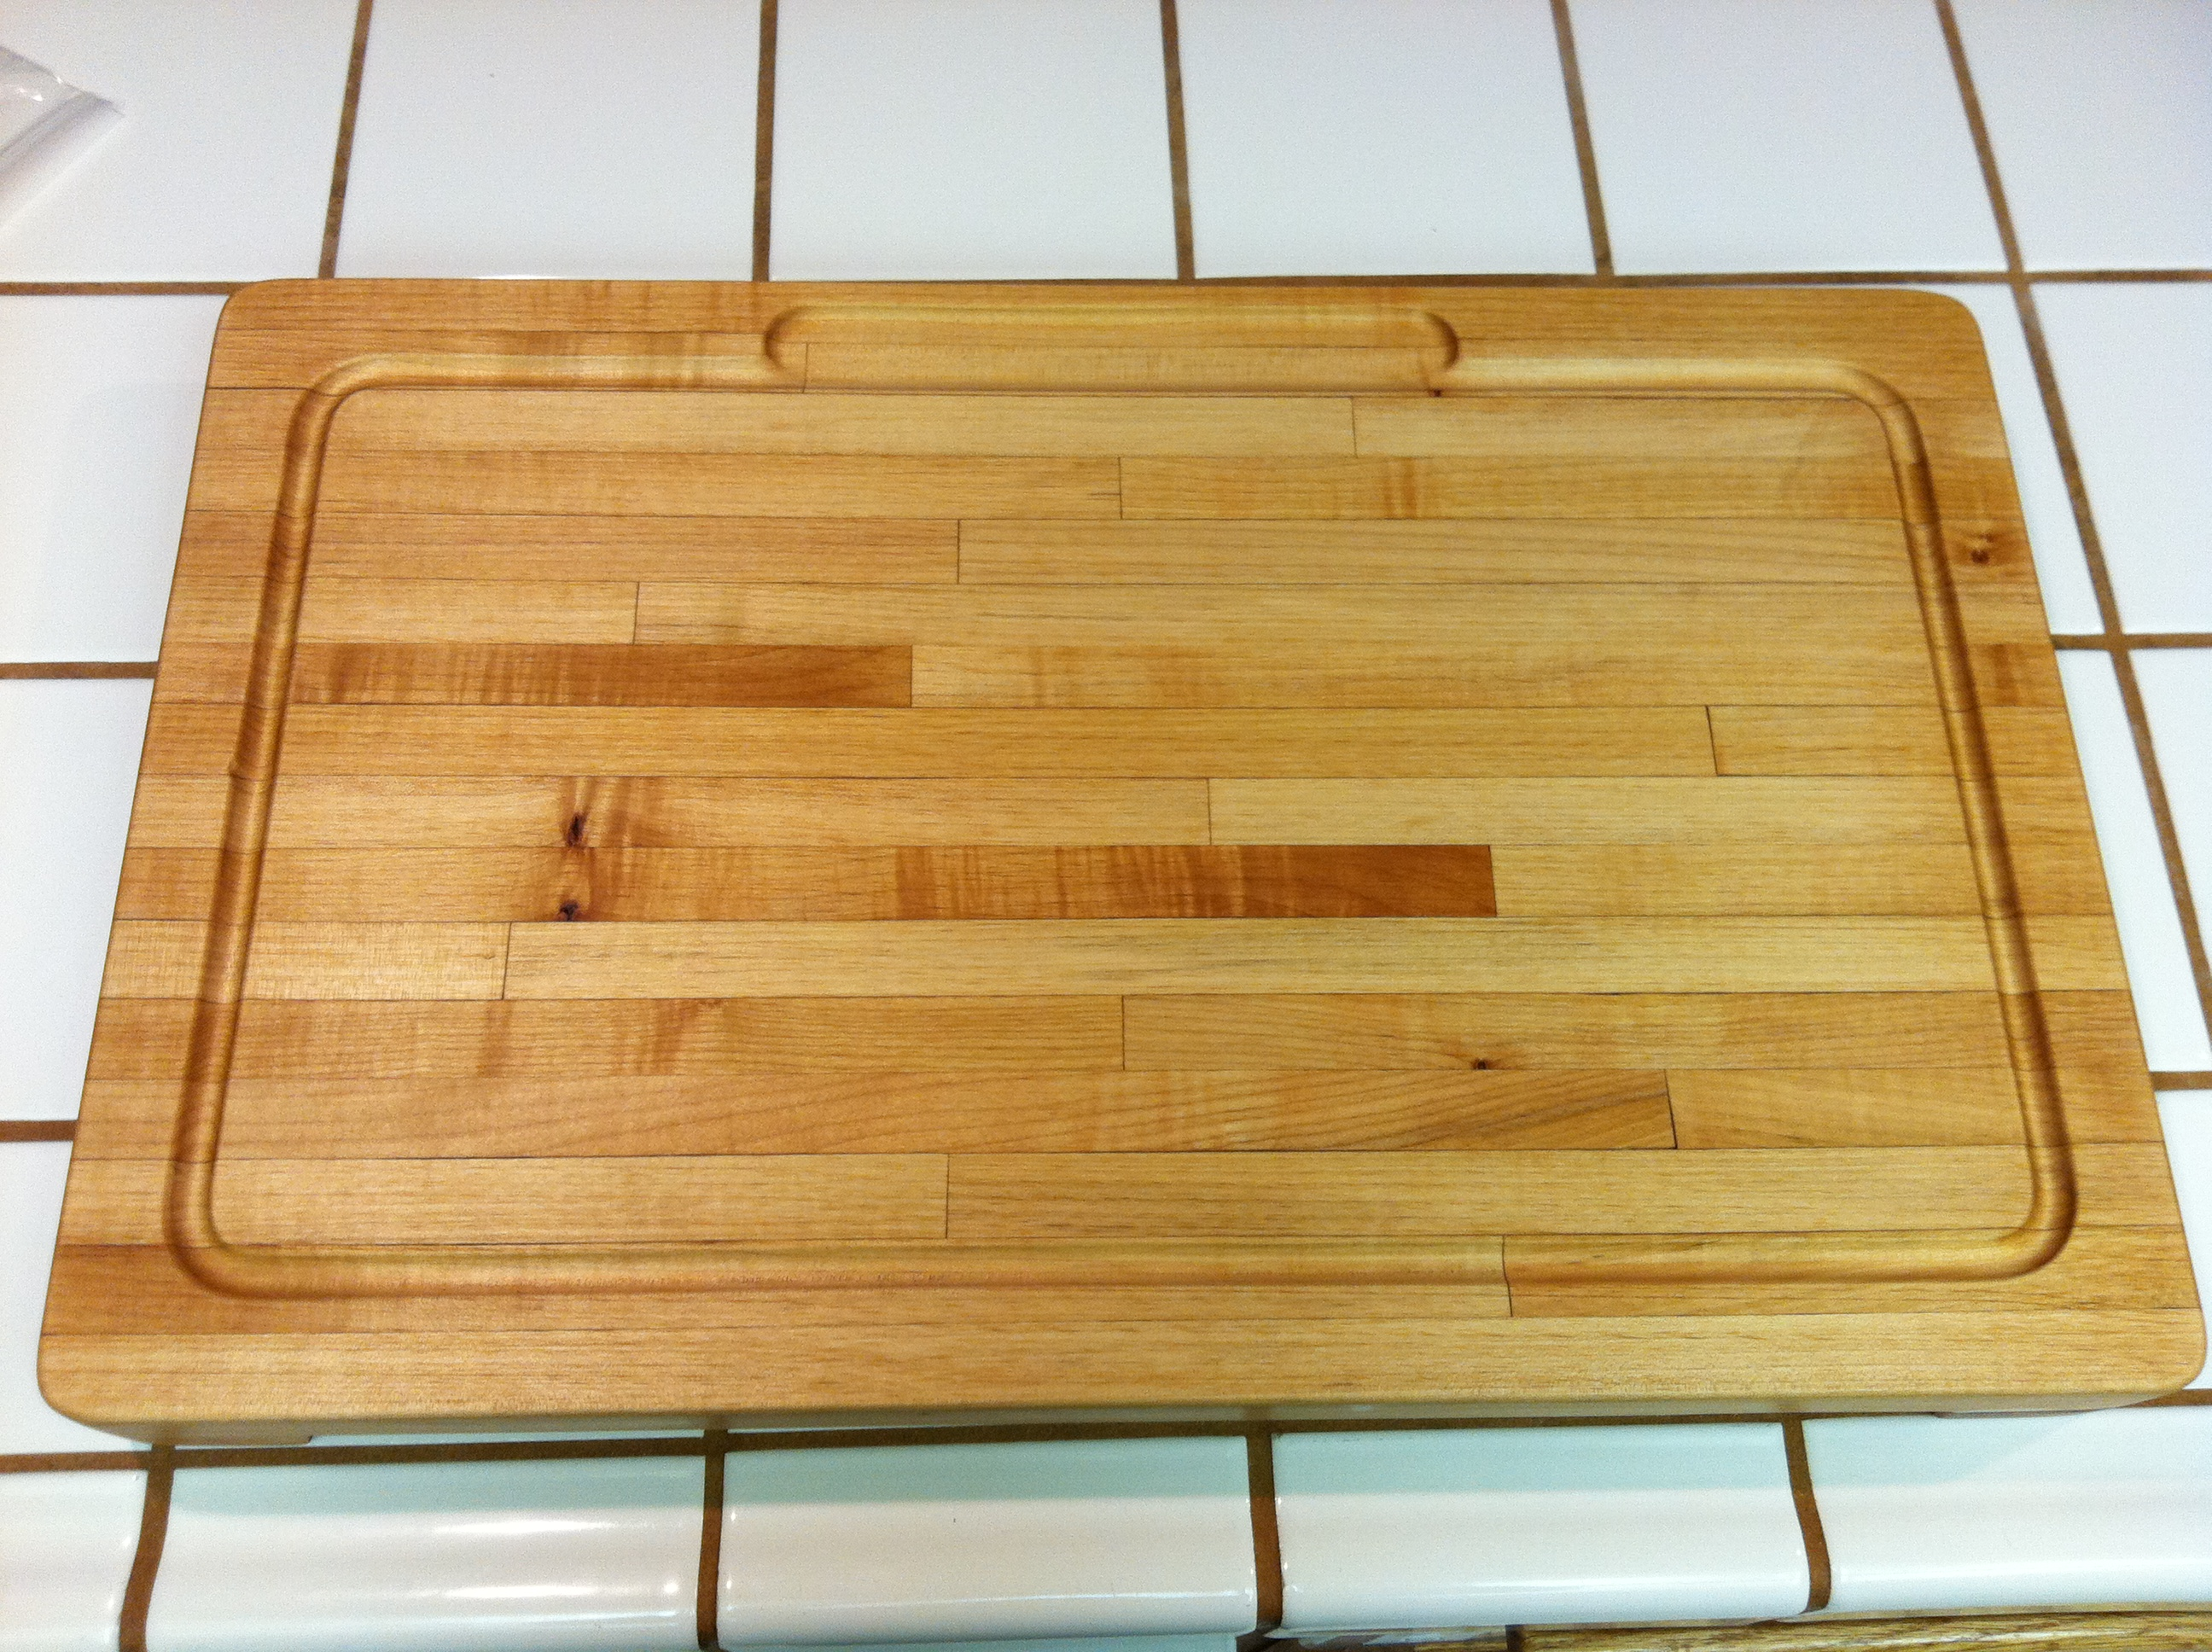 Huge Butcher Block Cutting Board My Very First Build Ever Ana White